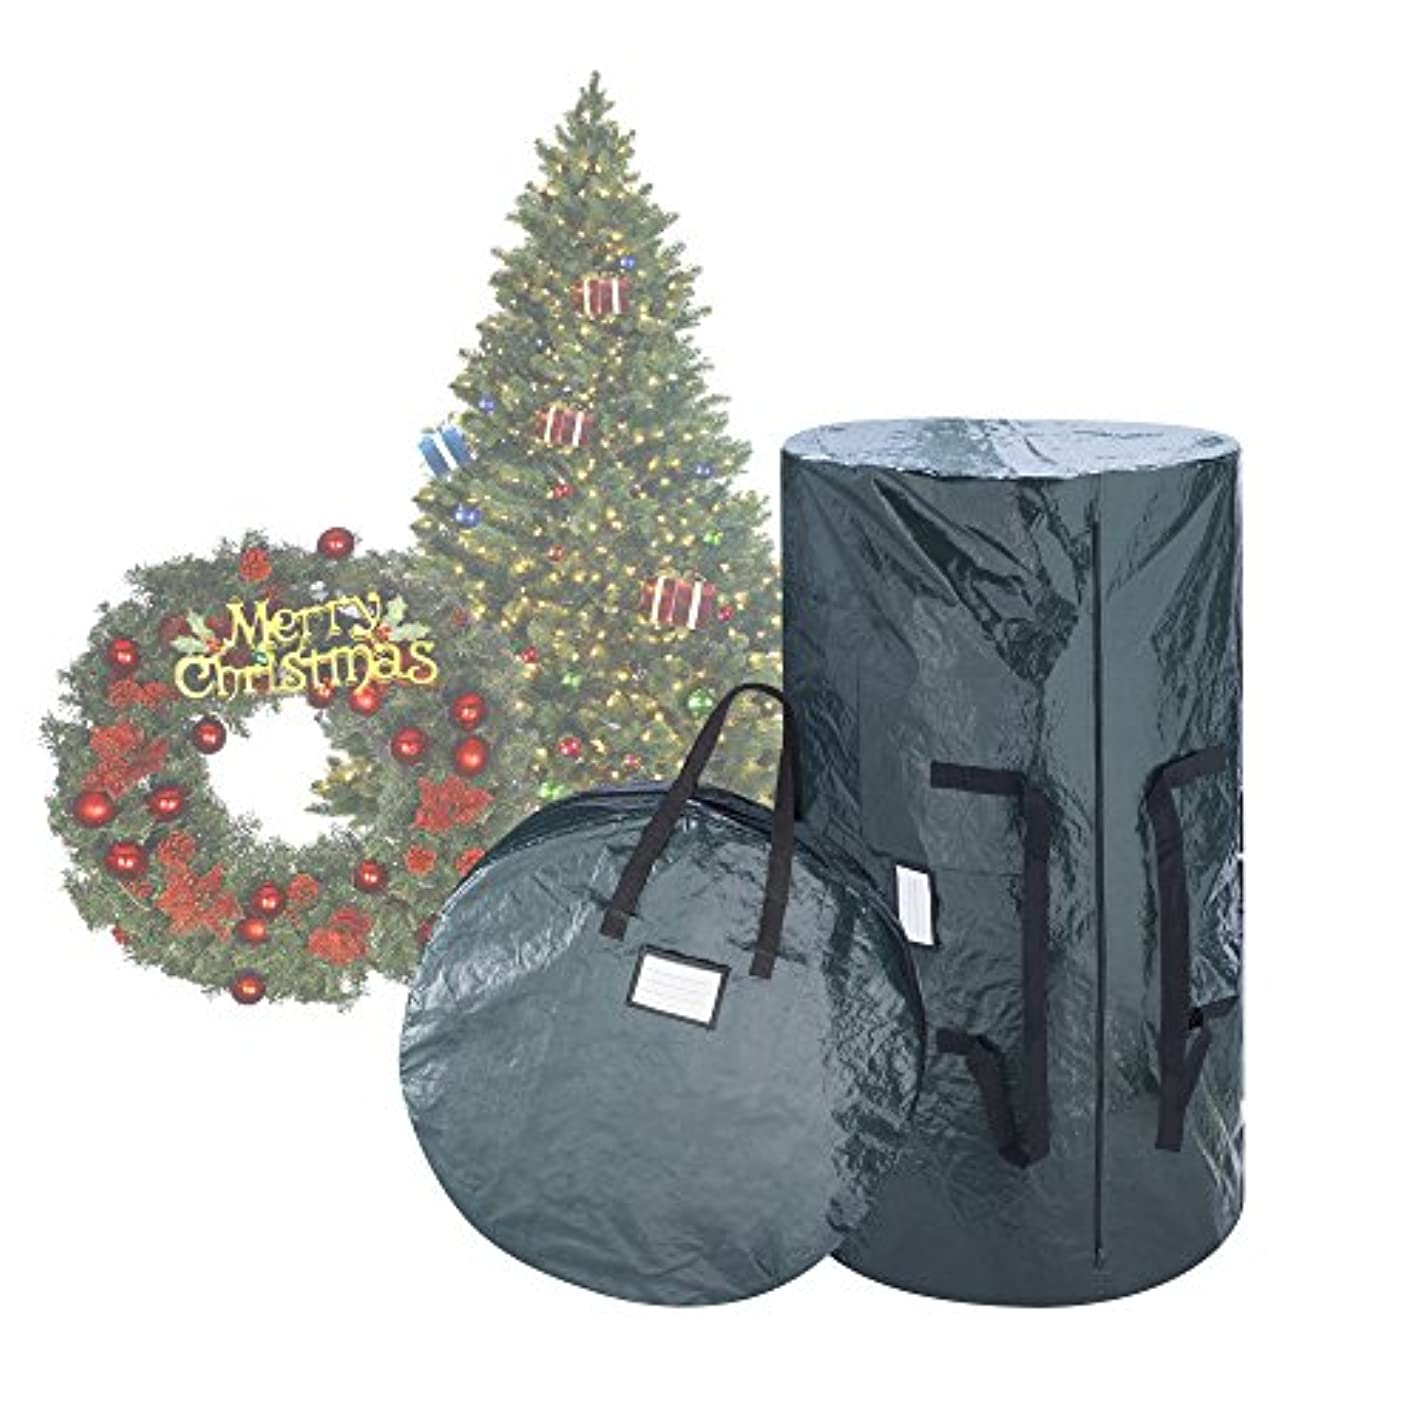 Elf Stor 1018 Combo Gn Deluxe Green Christmas Storage 9 Foot Artificial Trees & 30